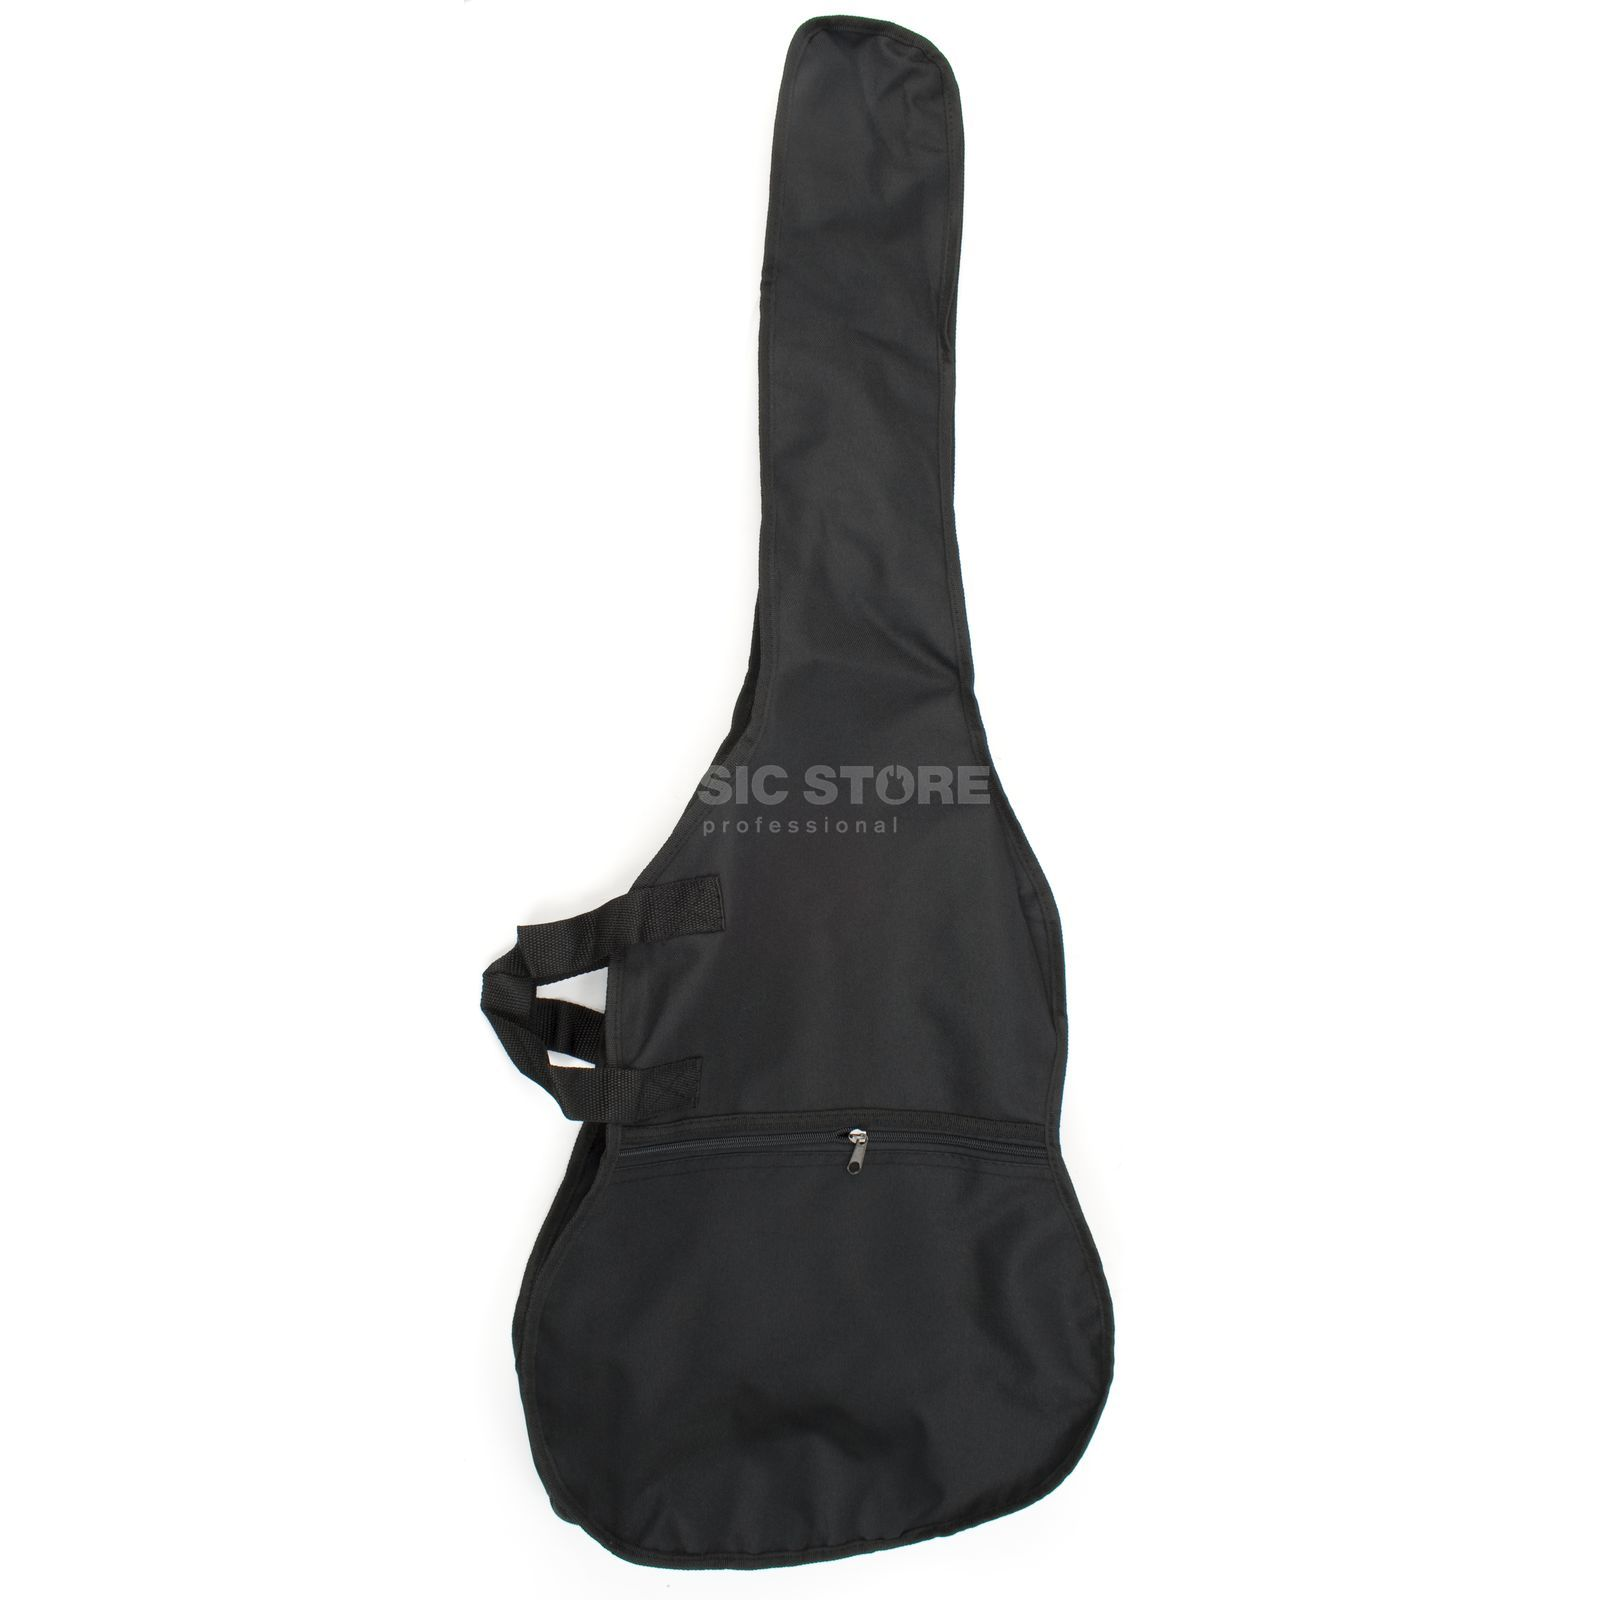 MUSIC STORE Eco Gigbag for 4/4 Classical Guitars Product Image